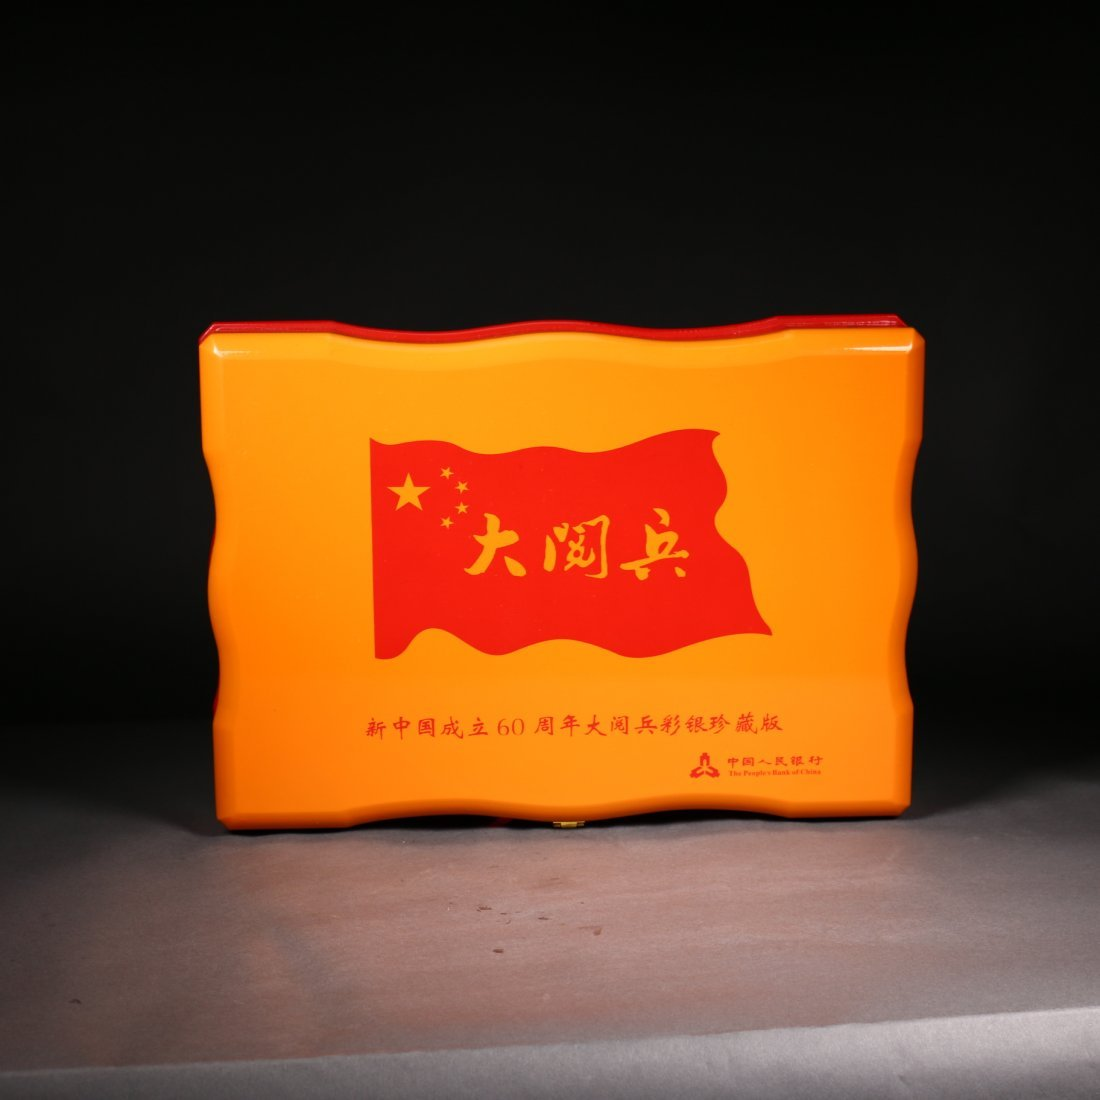 A large box Chinese silver coin